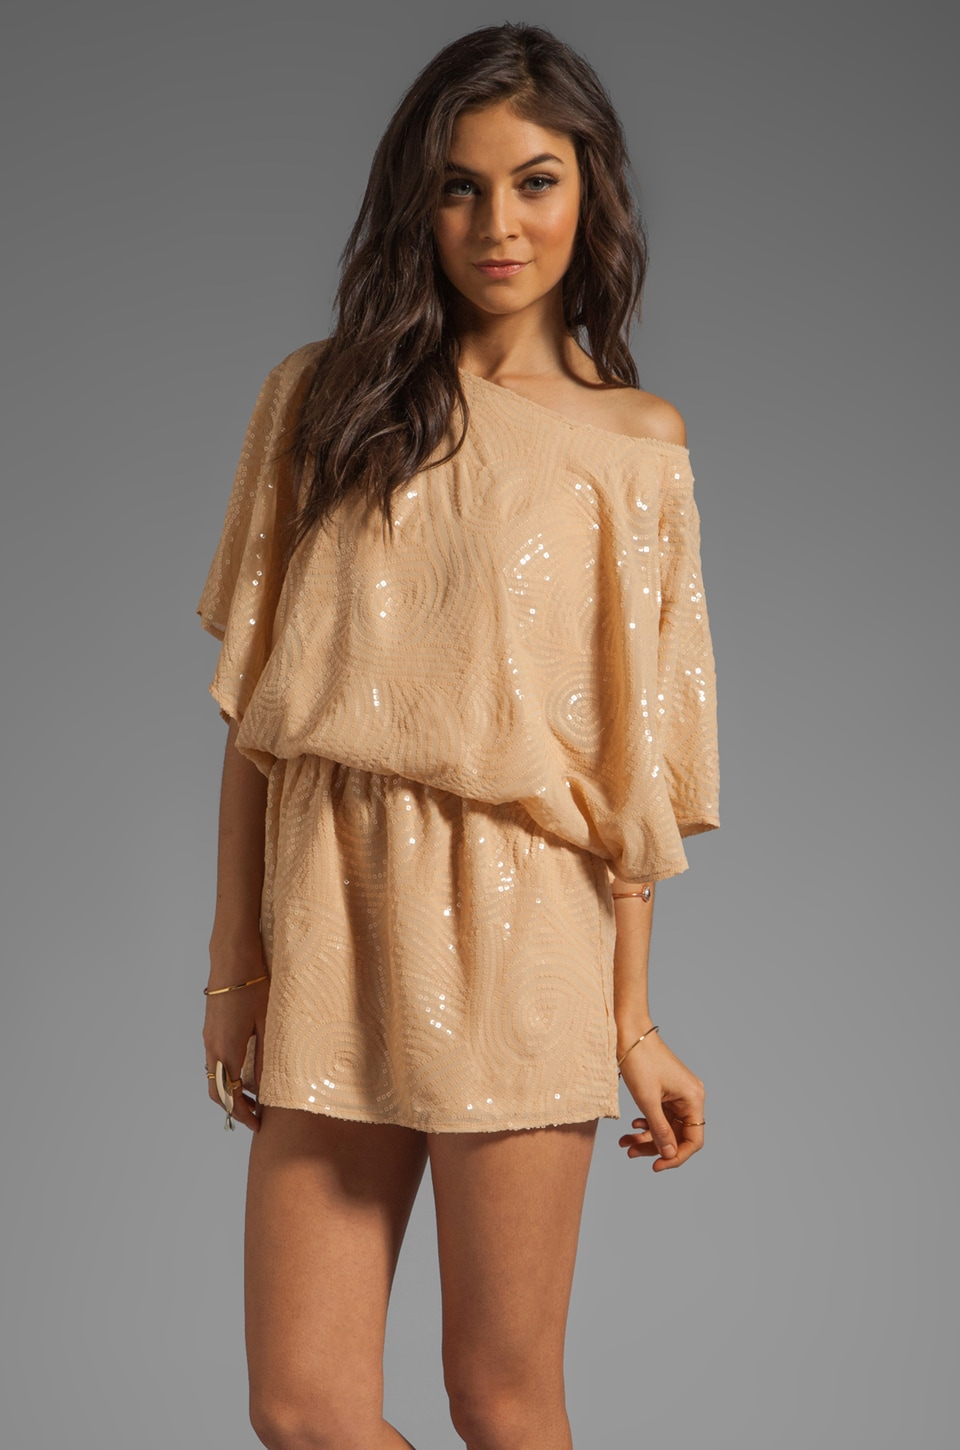 MM Couture by Miss Me Sequin Dress With Flutter Sleeve in Beige